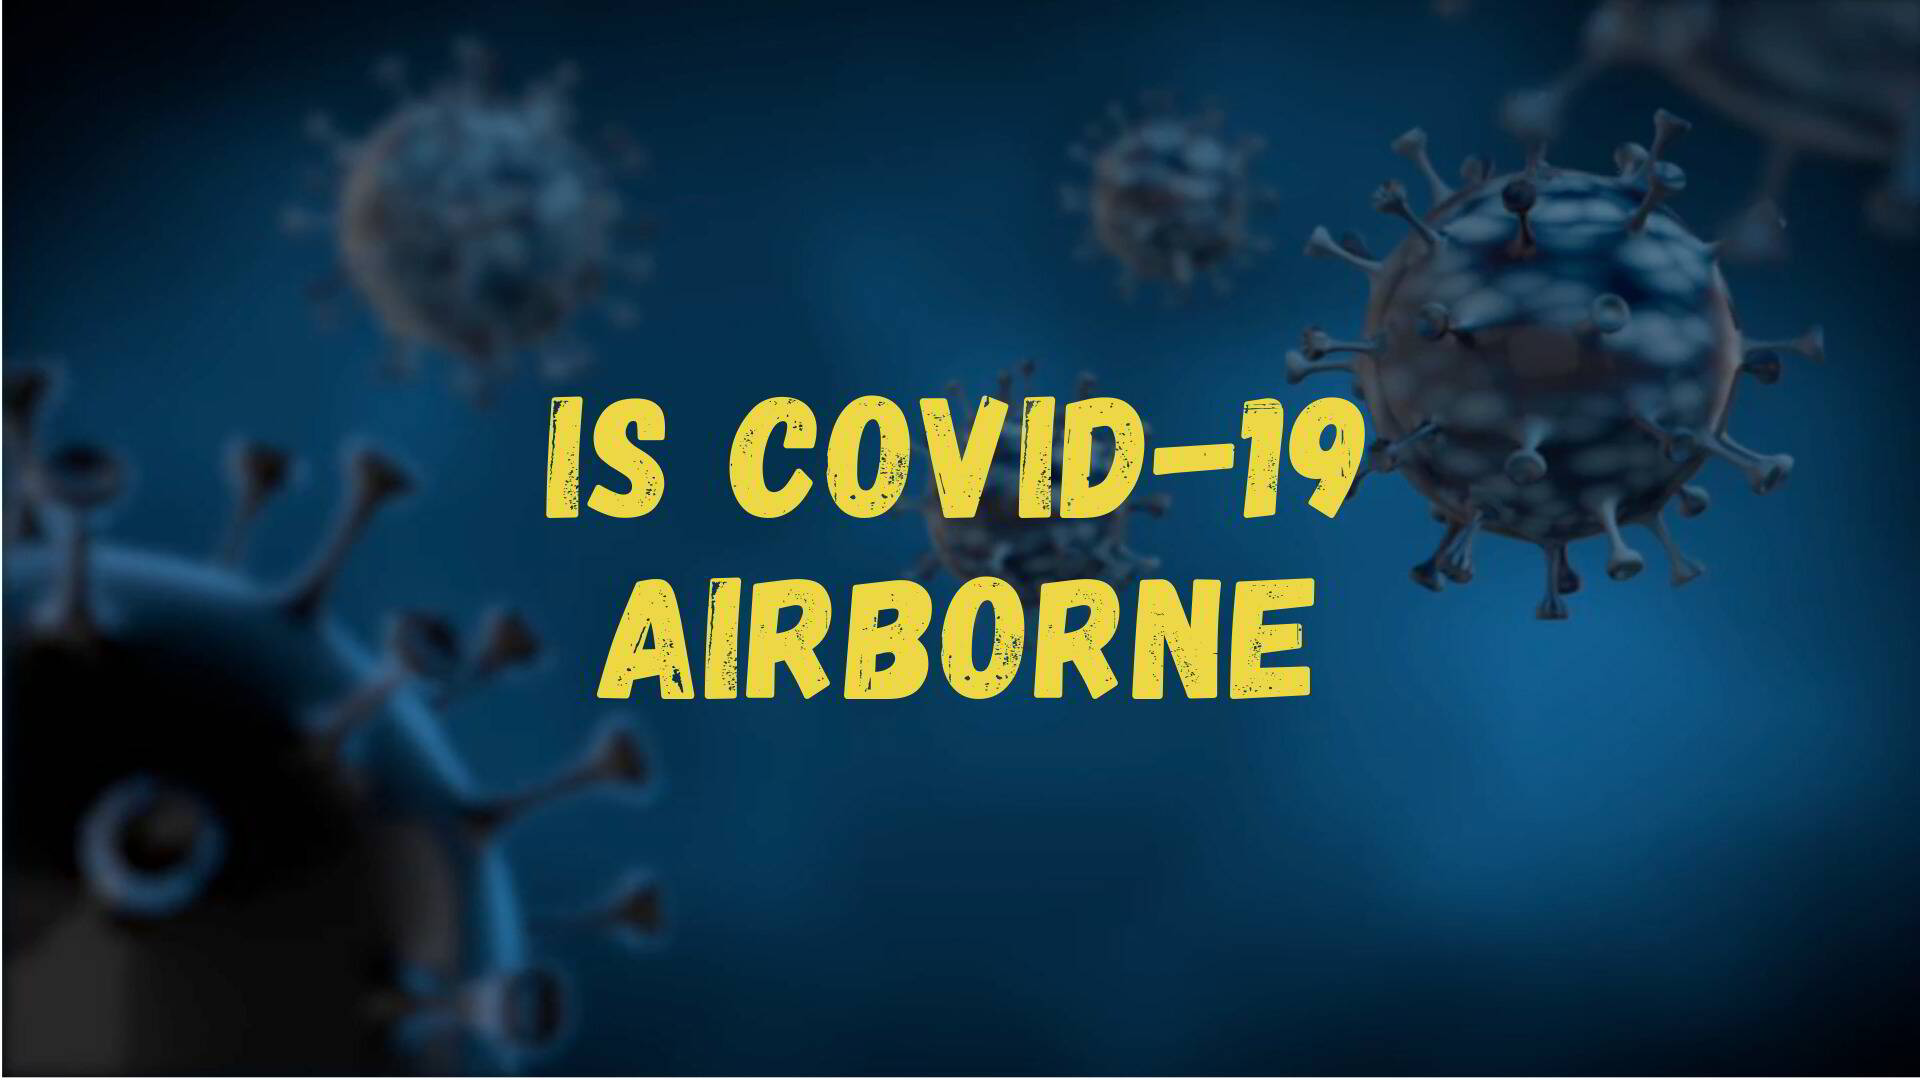 COVID19 is not Airborne – The true facts